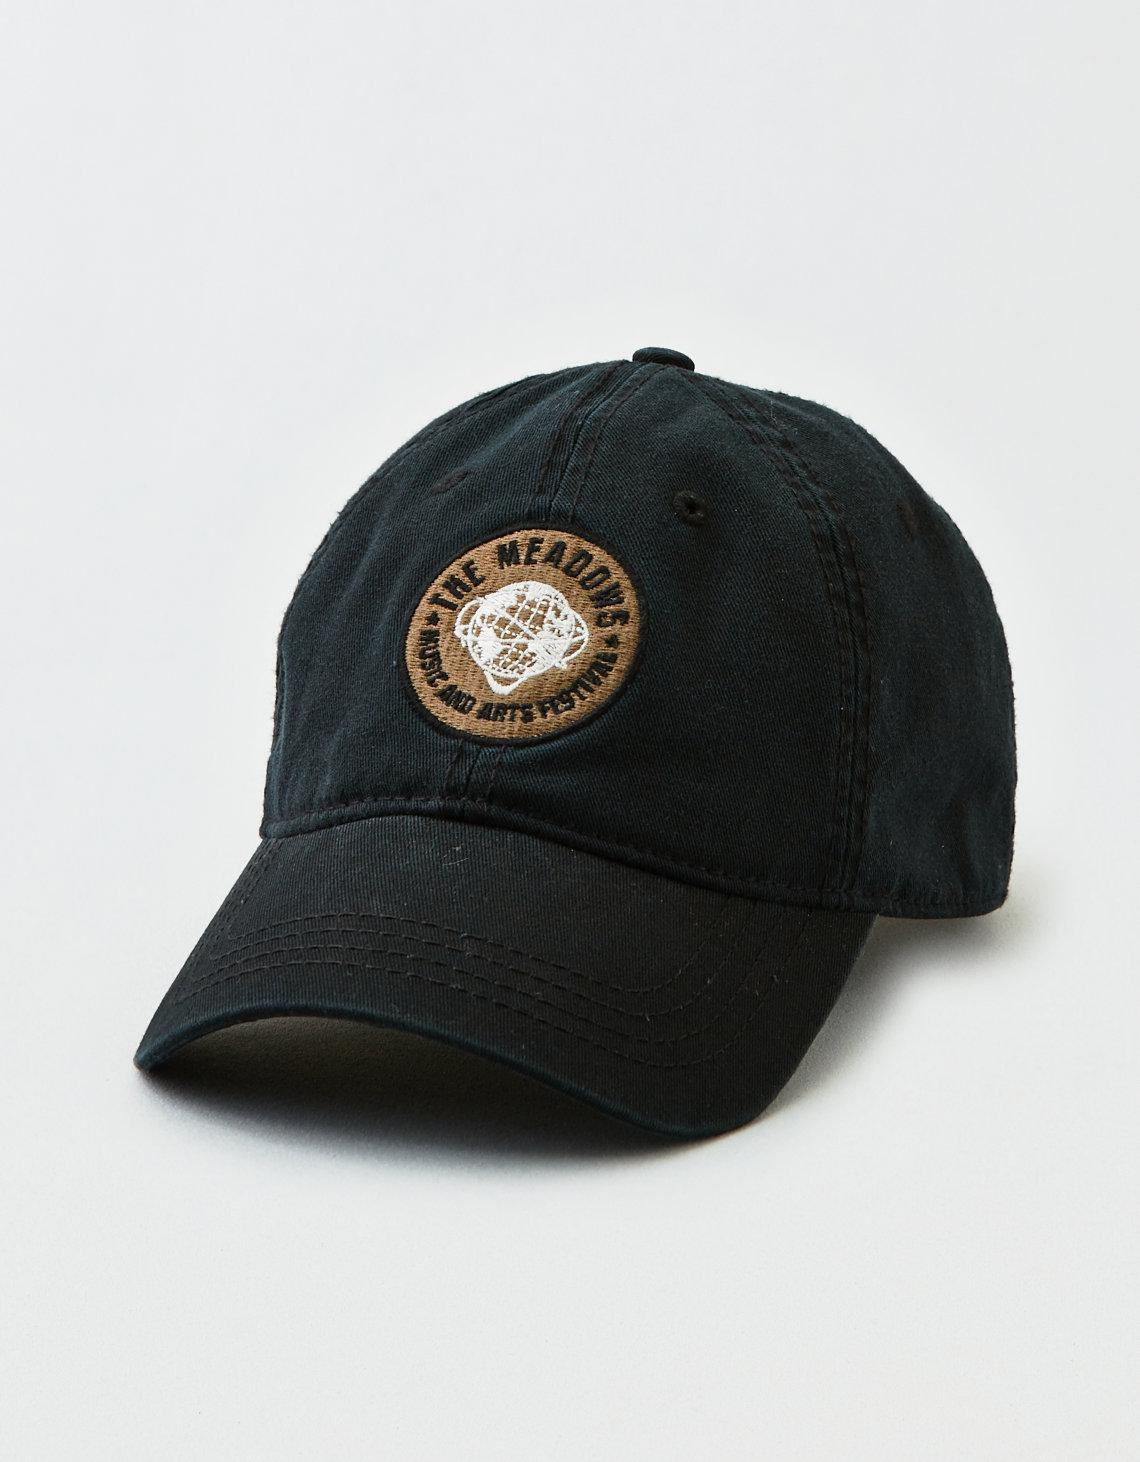 58a7e164b54a9 Lyst - American Eagle X Meadows Festival Embroidered Dad Hat in ...